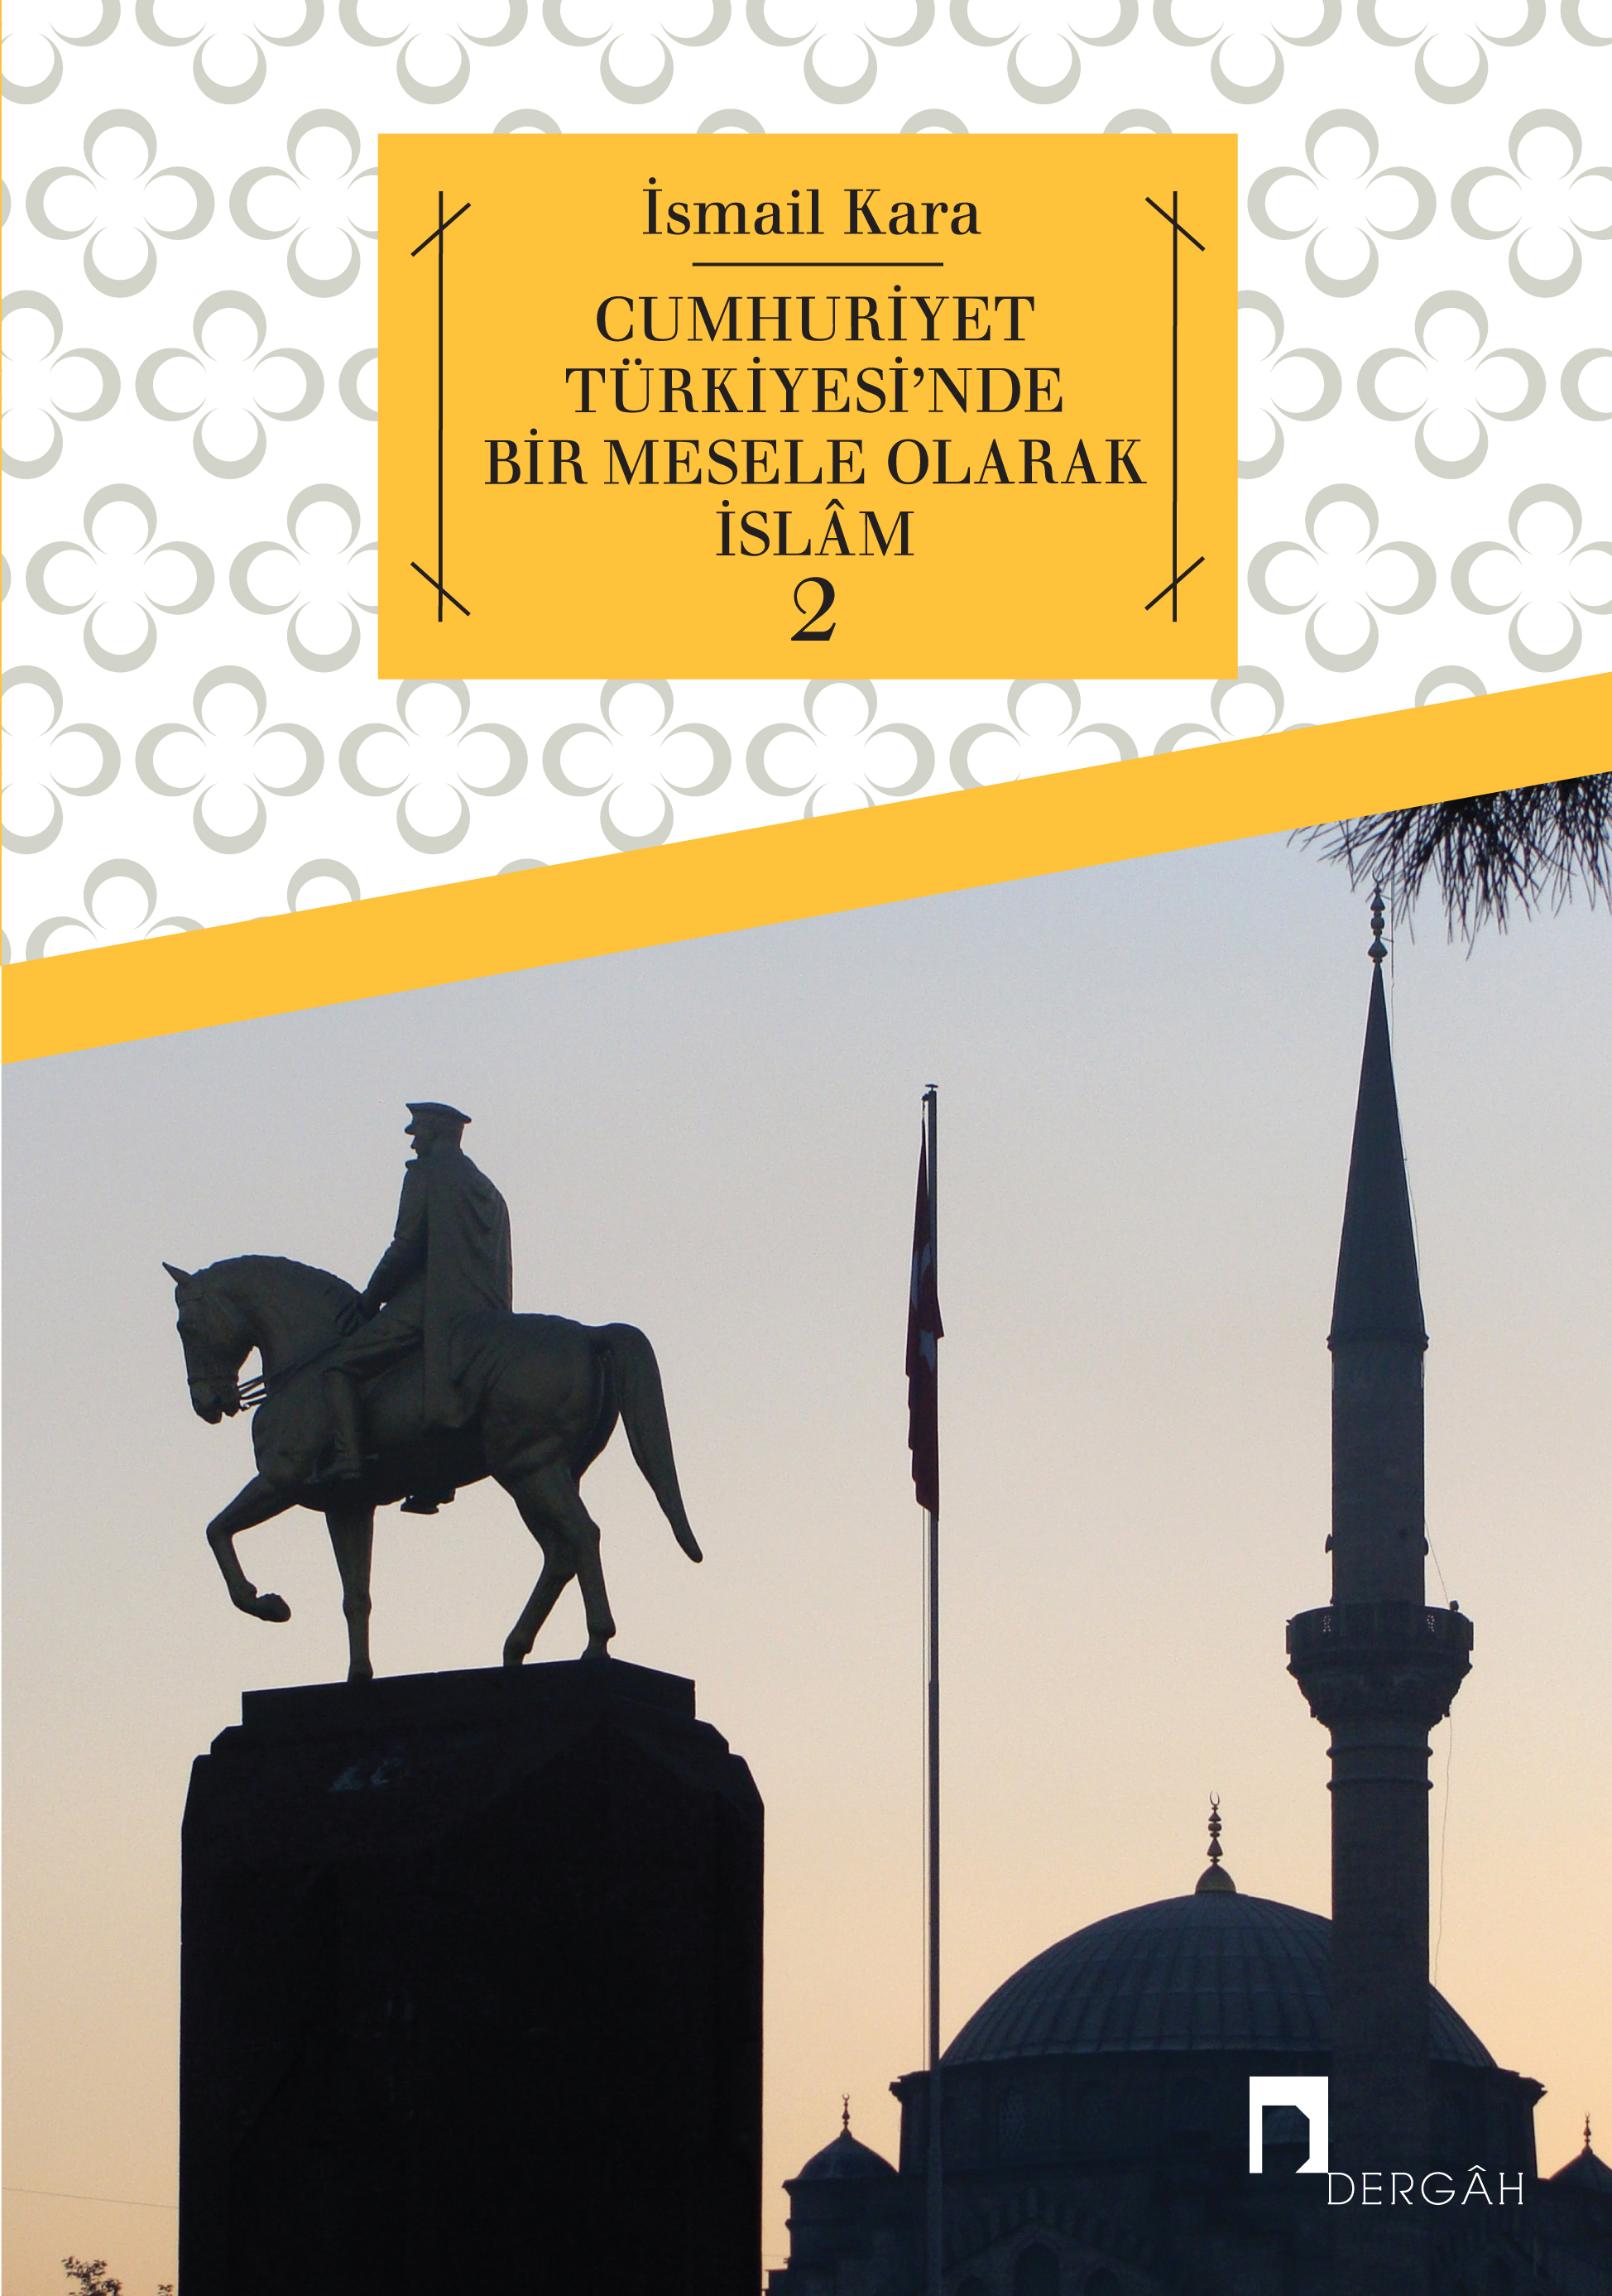 Islam and Islamism in Turkey: A Conversation with İsmail Kara - Maydan